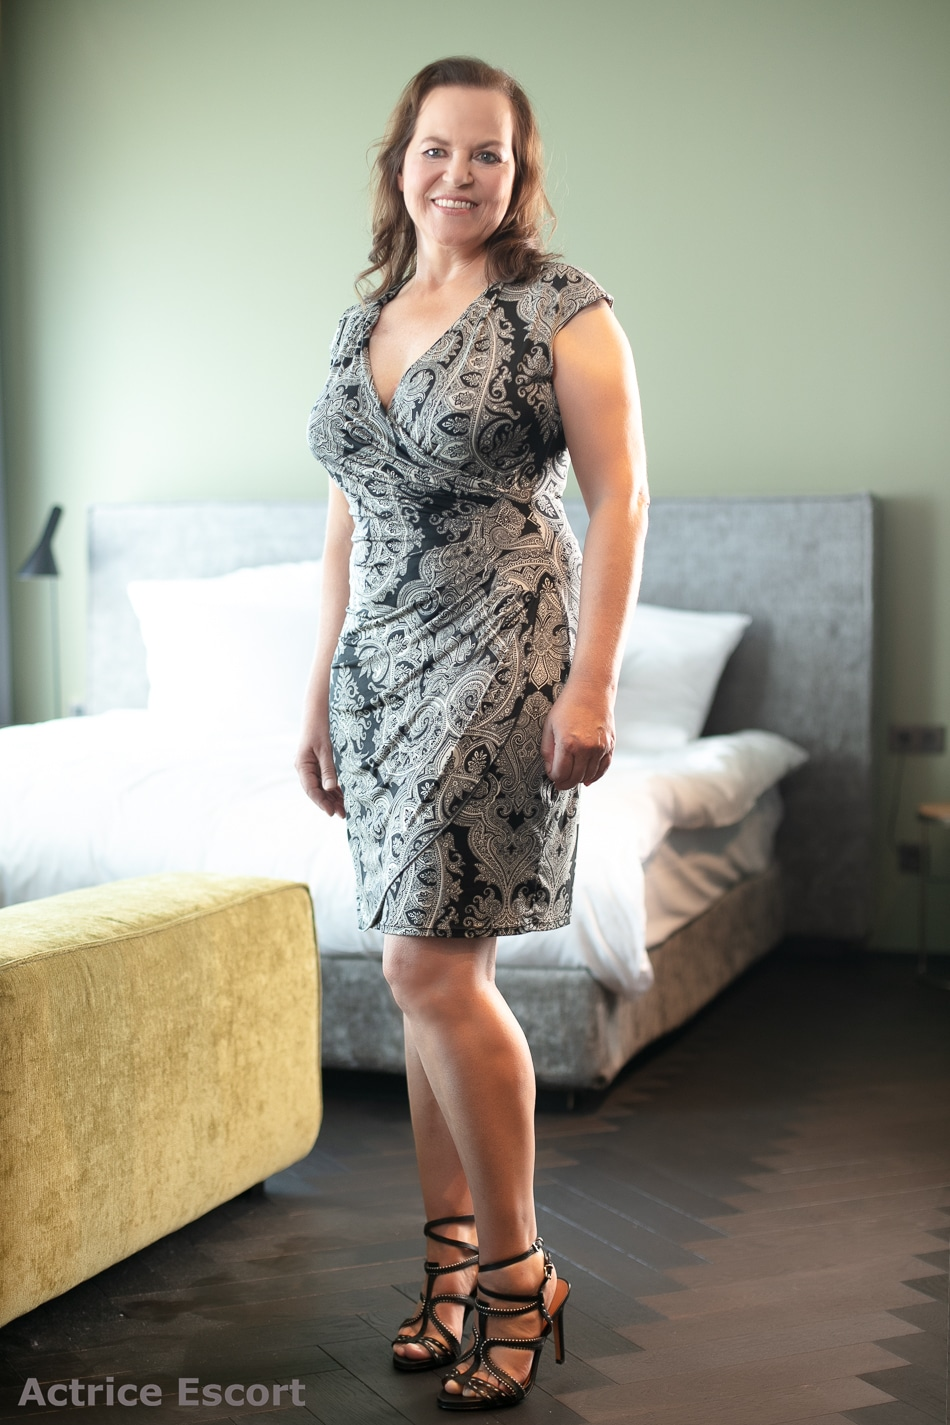 Bettina Escortservice Duesseldorf(1)